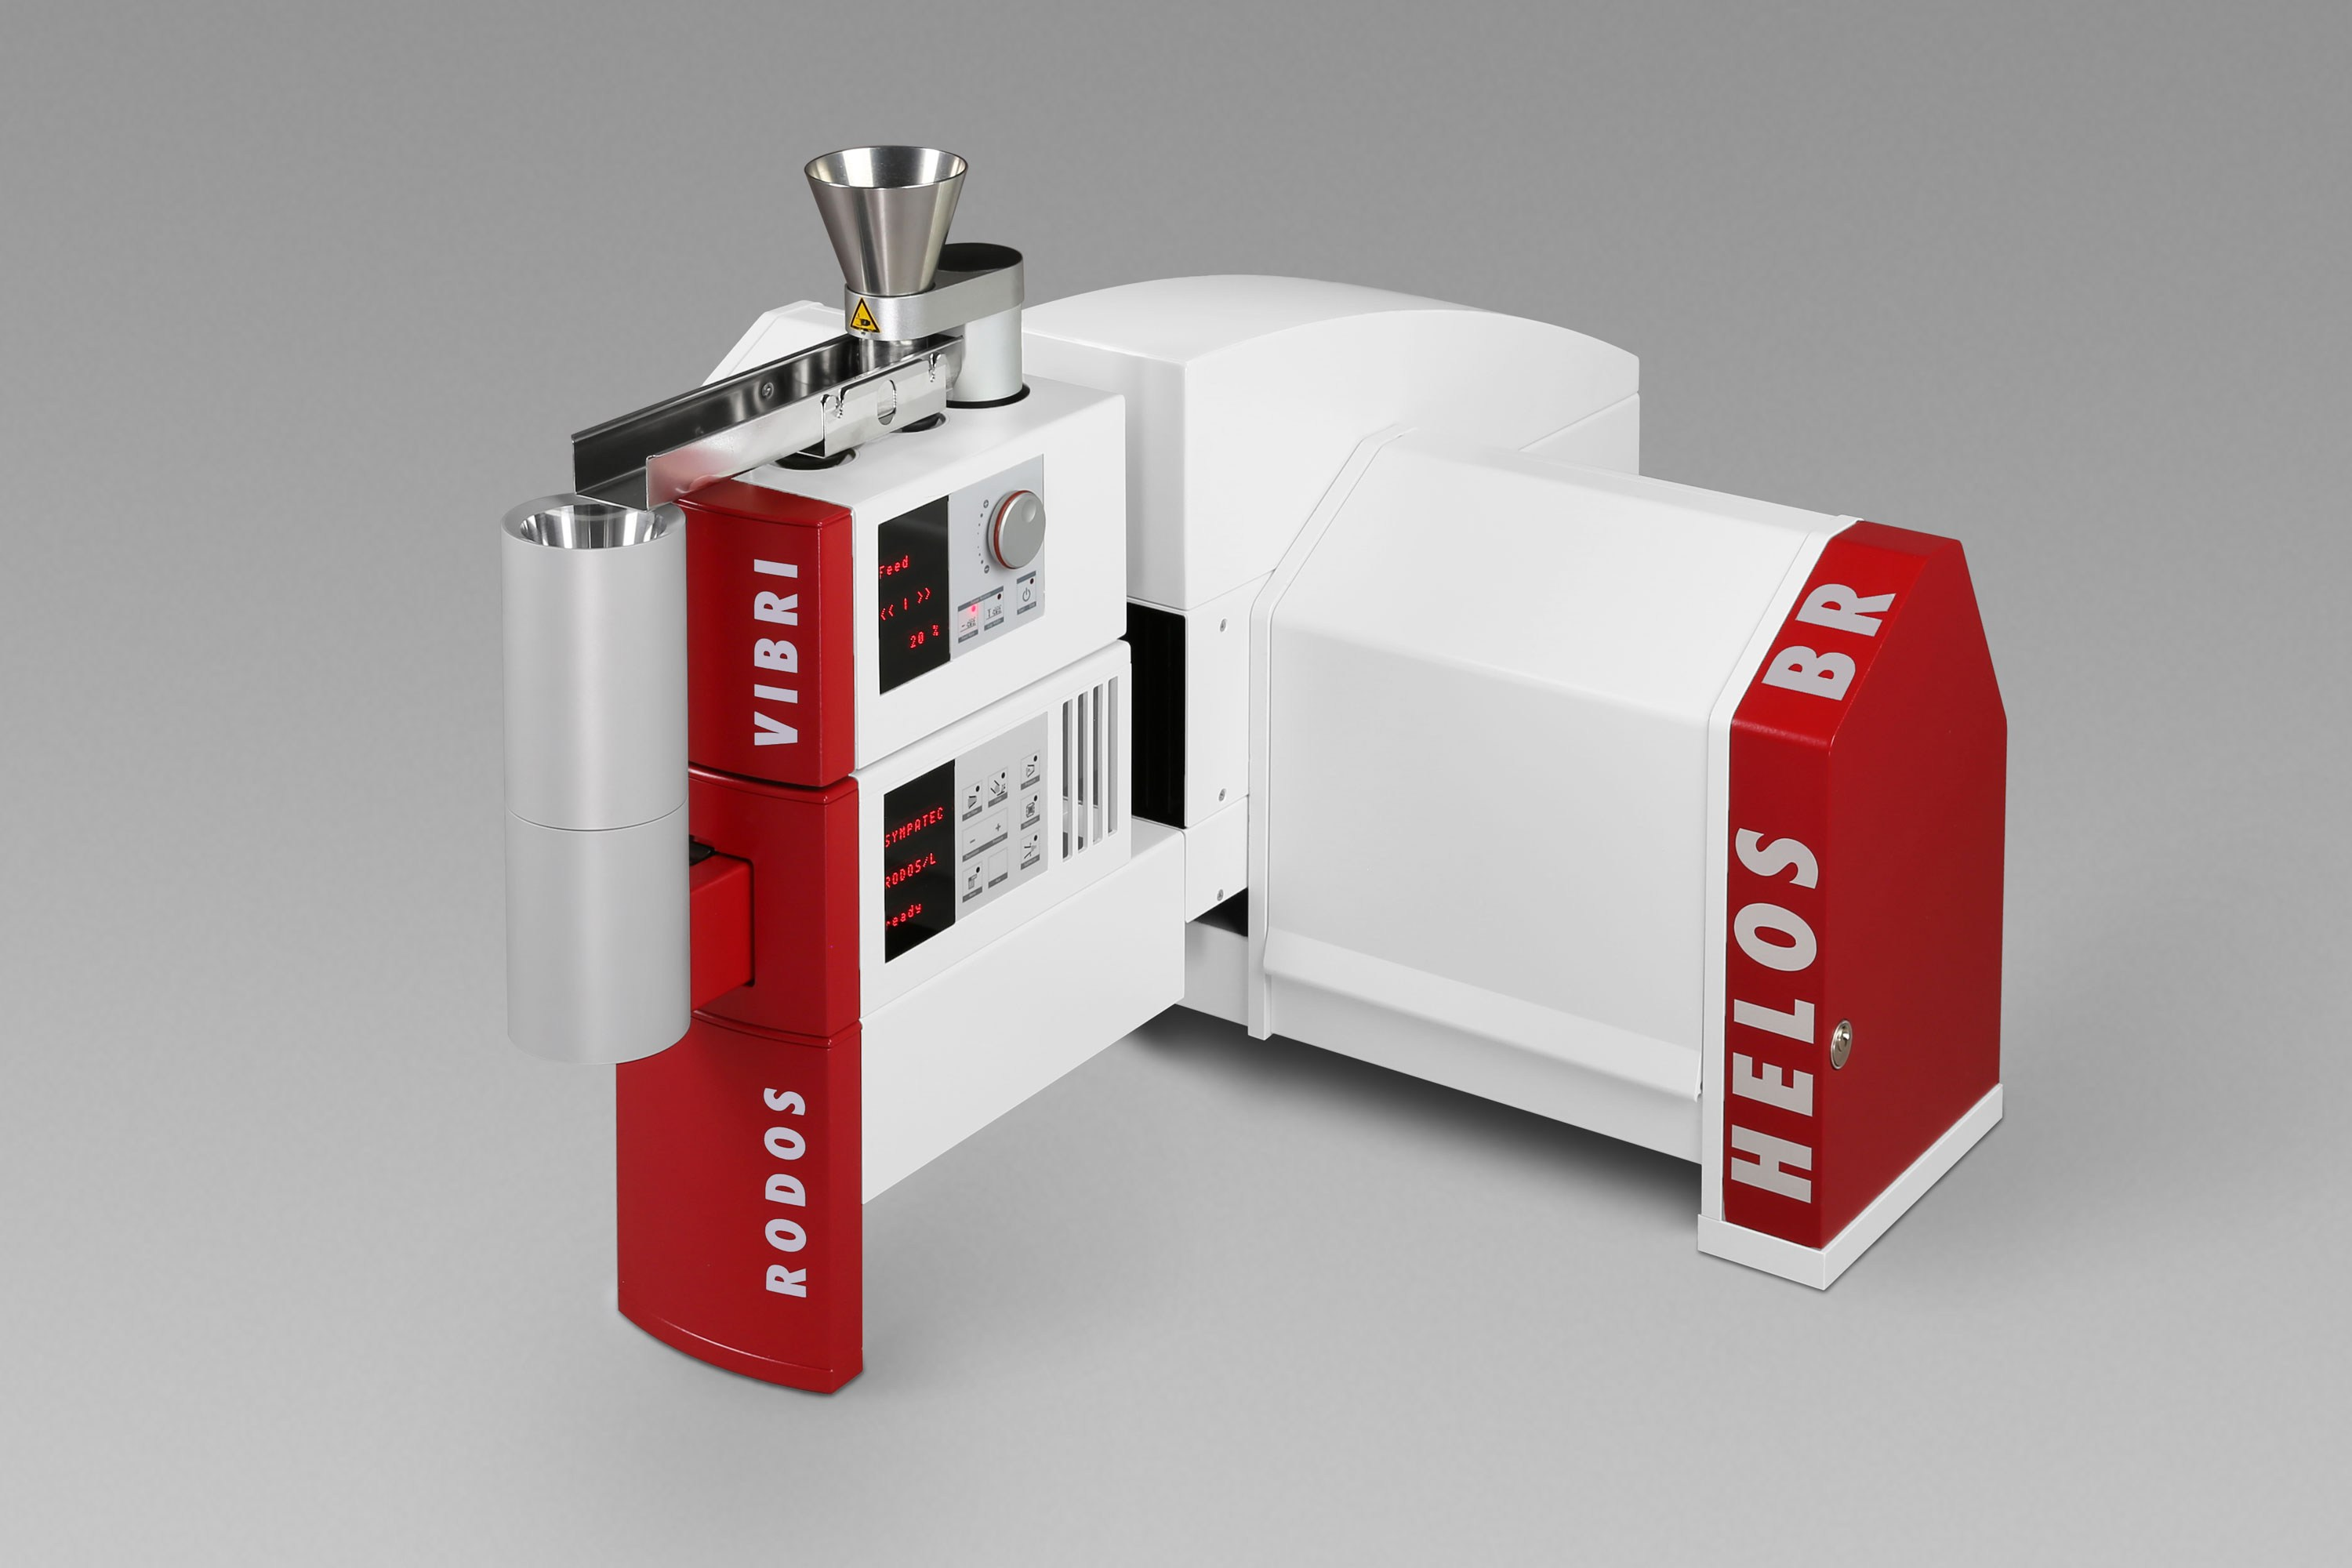 HELOS | RODOS & Co. Laser Diffraction | Particle Size and Particle Size Distribution from below 0.1 µm to 8,75